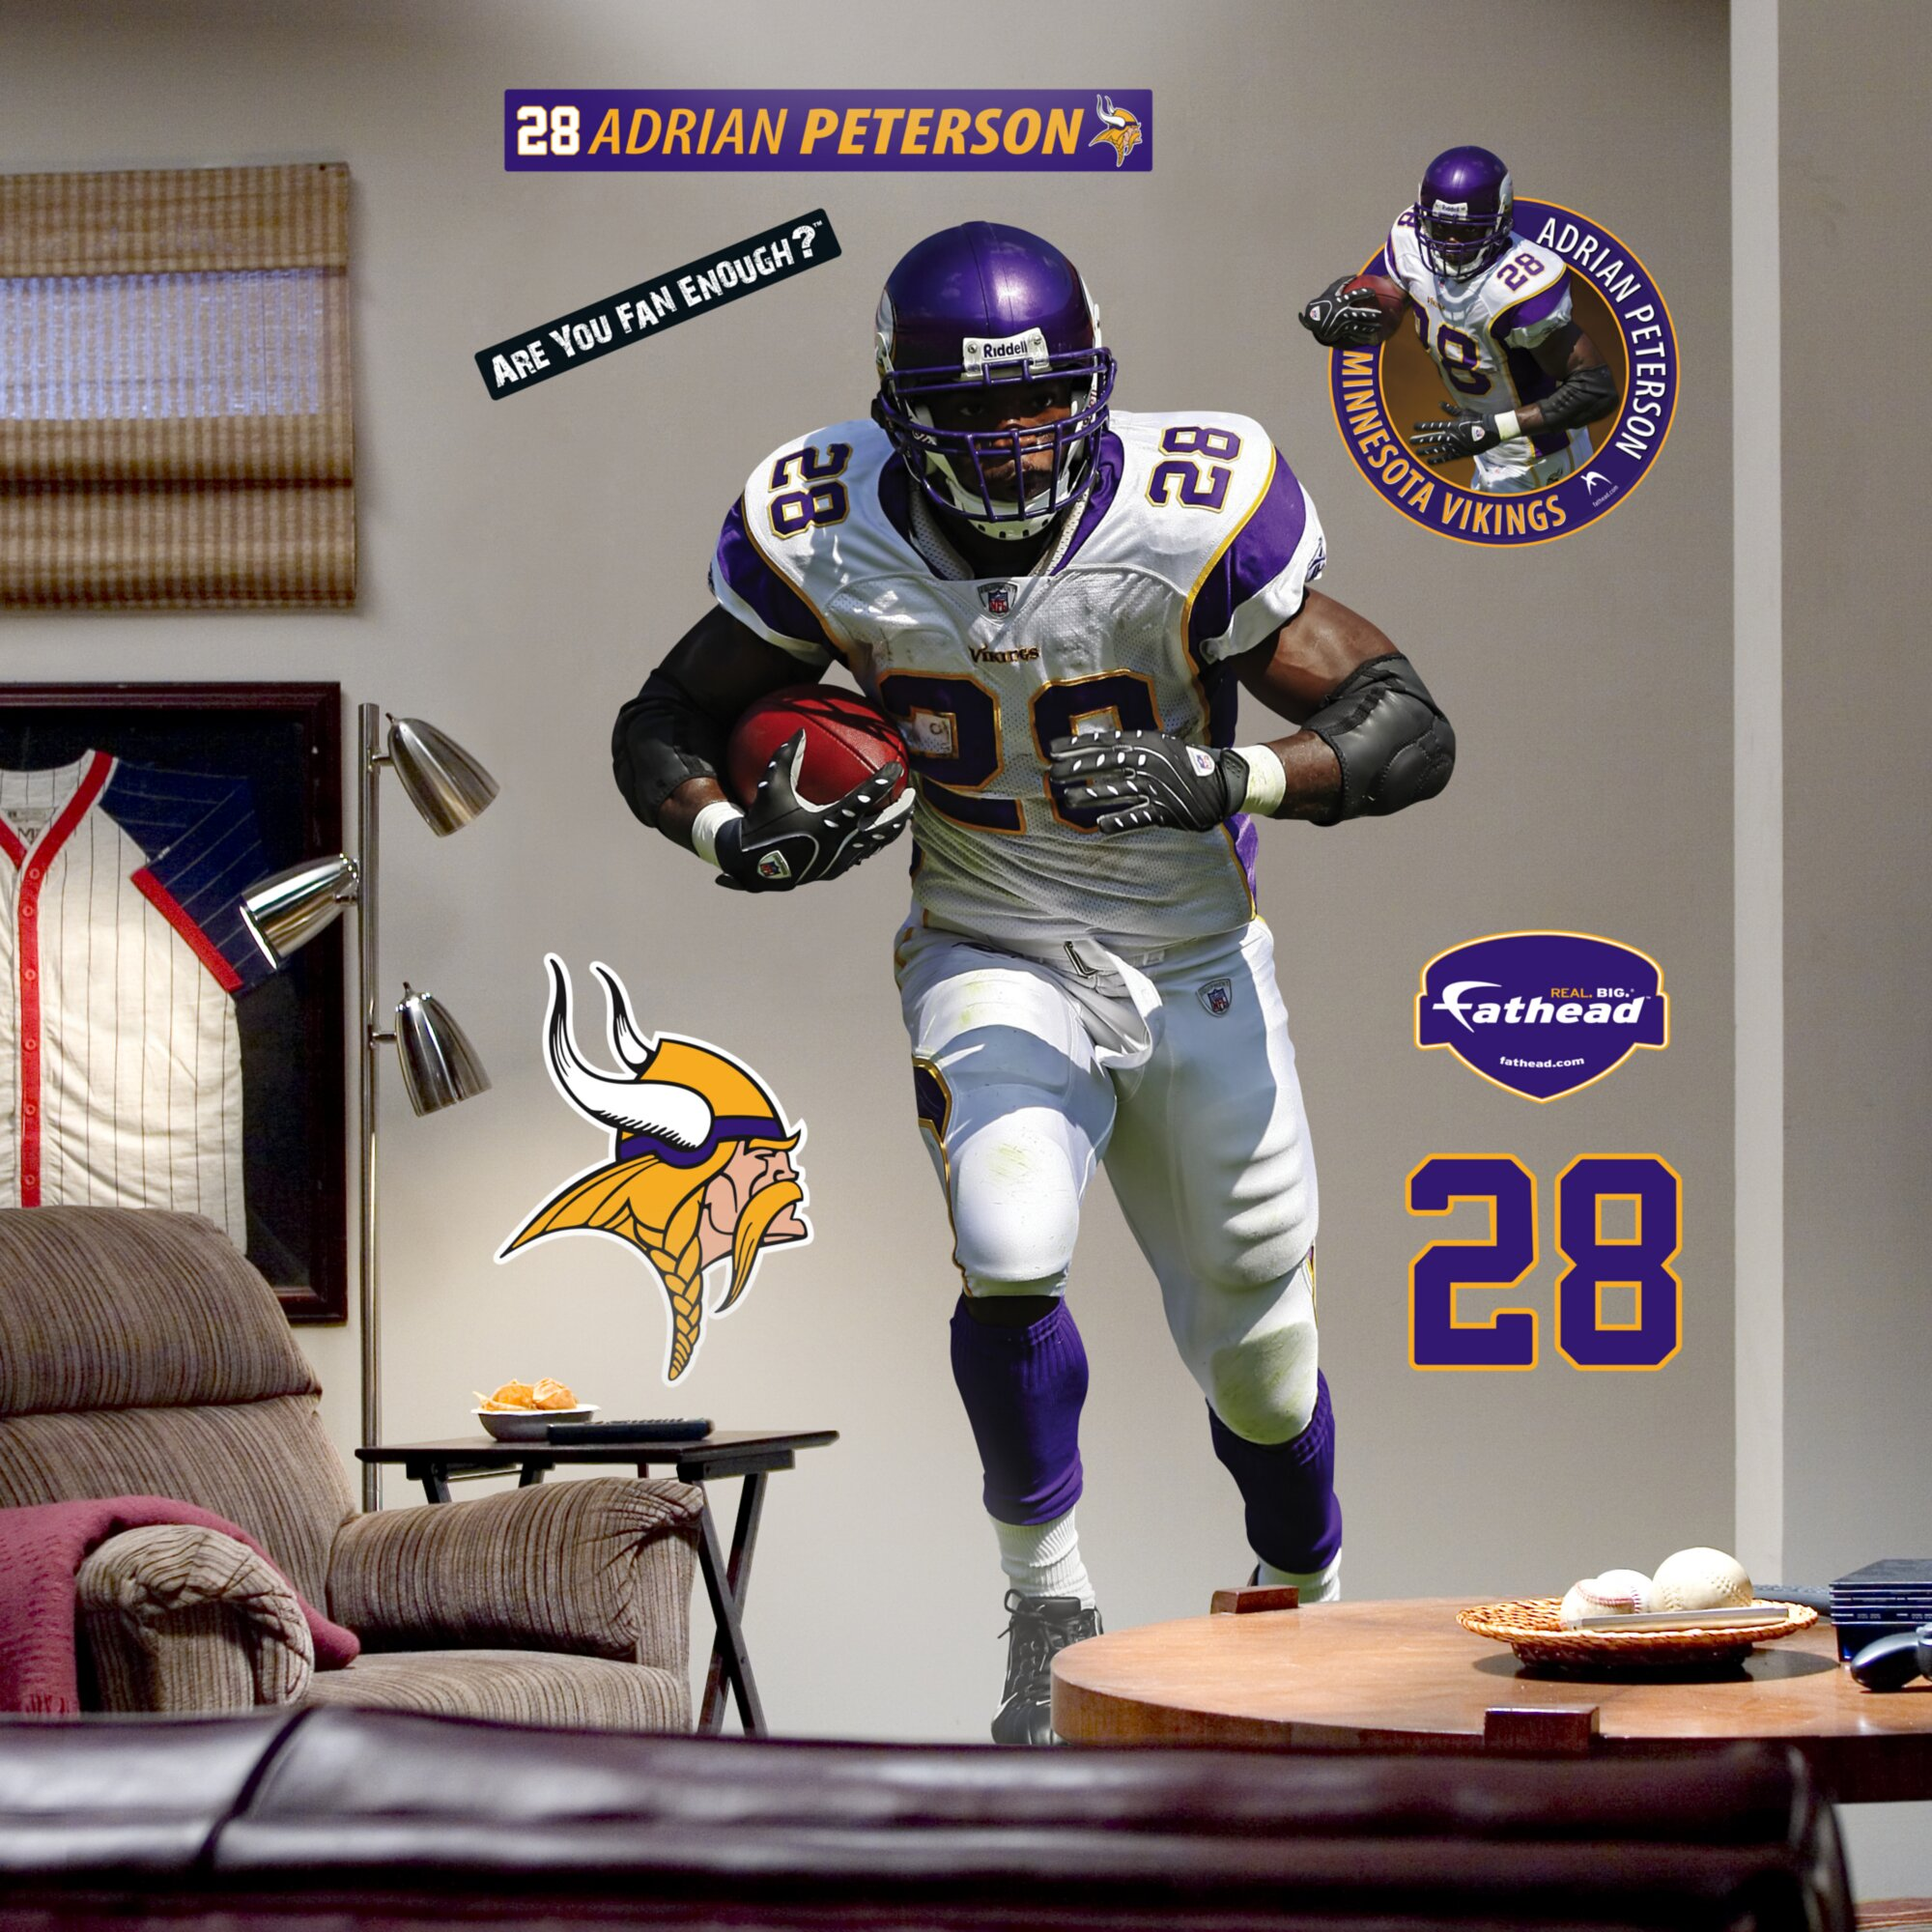 Nfl wall decals image collections home wall decoration ideas nfl wall decor images home wall decoration ideas nfl wall stickers images home wall decoration ideas amipublicfo Image collections